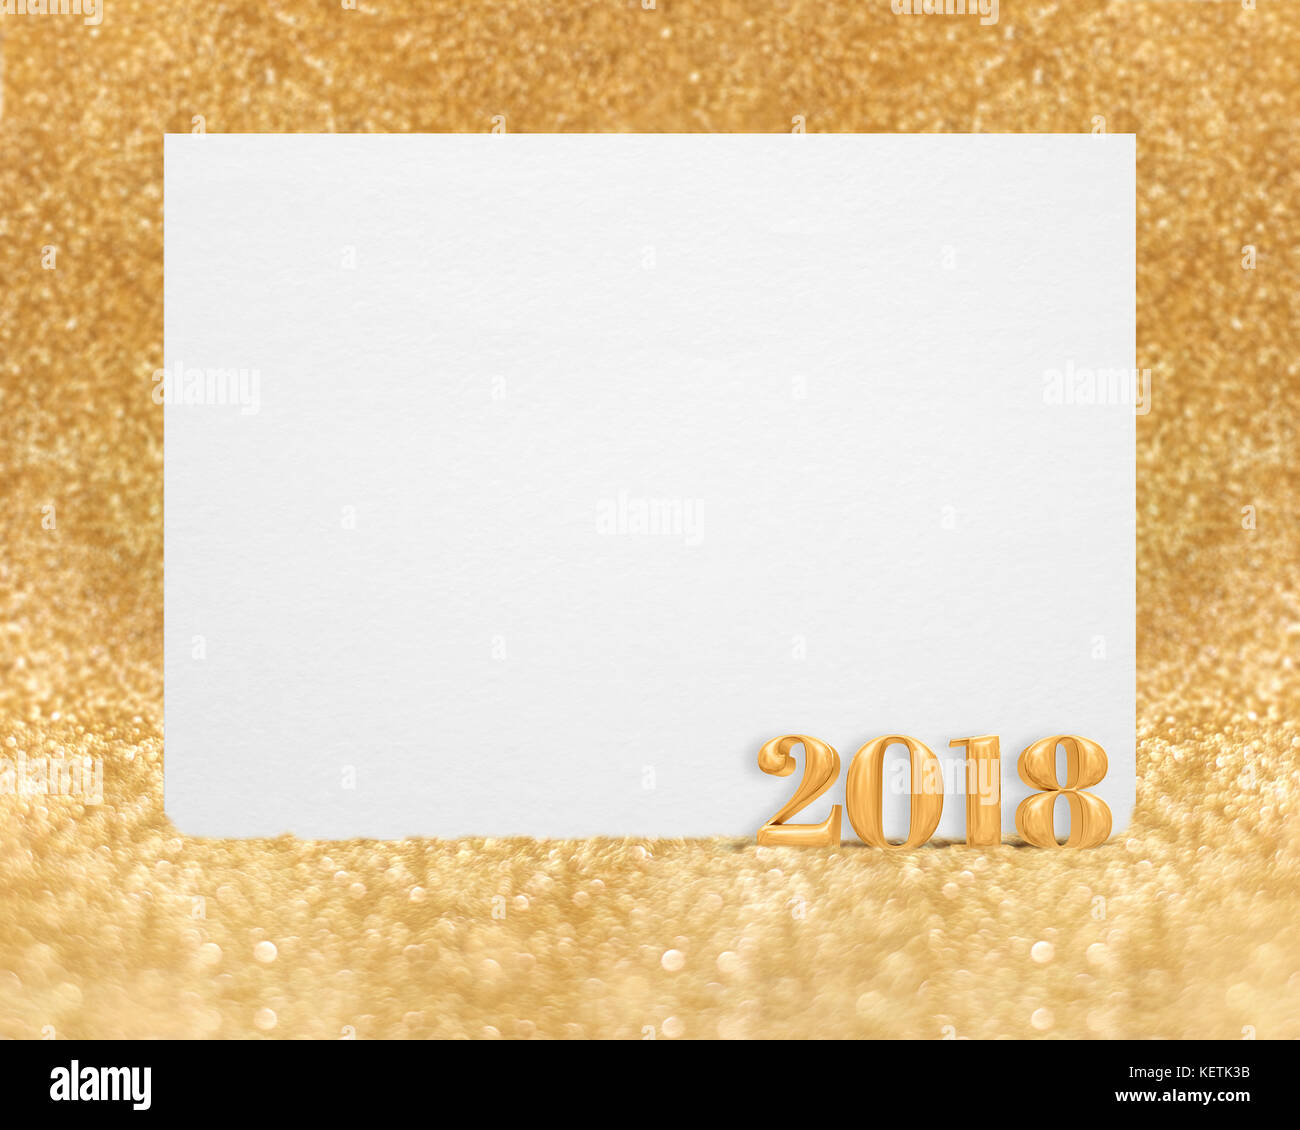 Greeting card display stock photos greeting card display stock gold color new year 2018 3d rendering with blank white greeting card in golend m4hsunfo